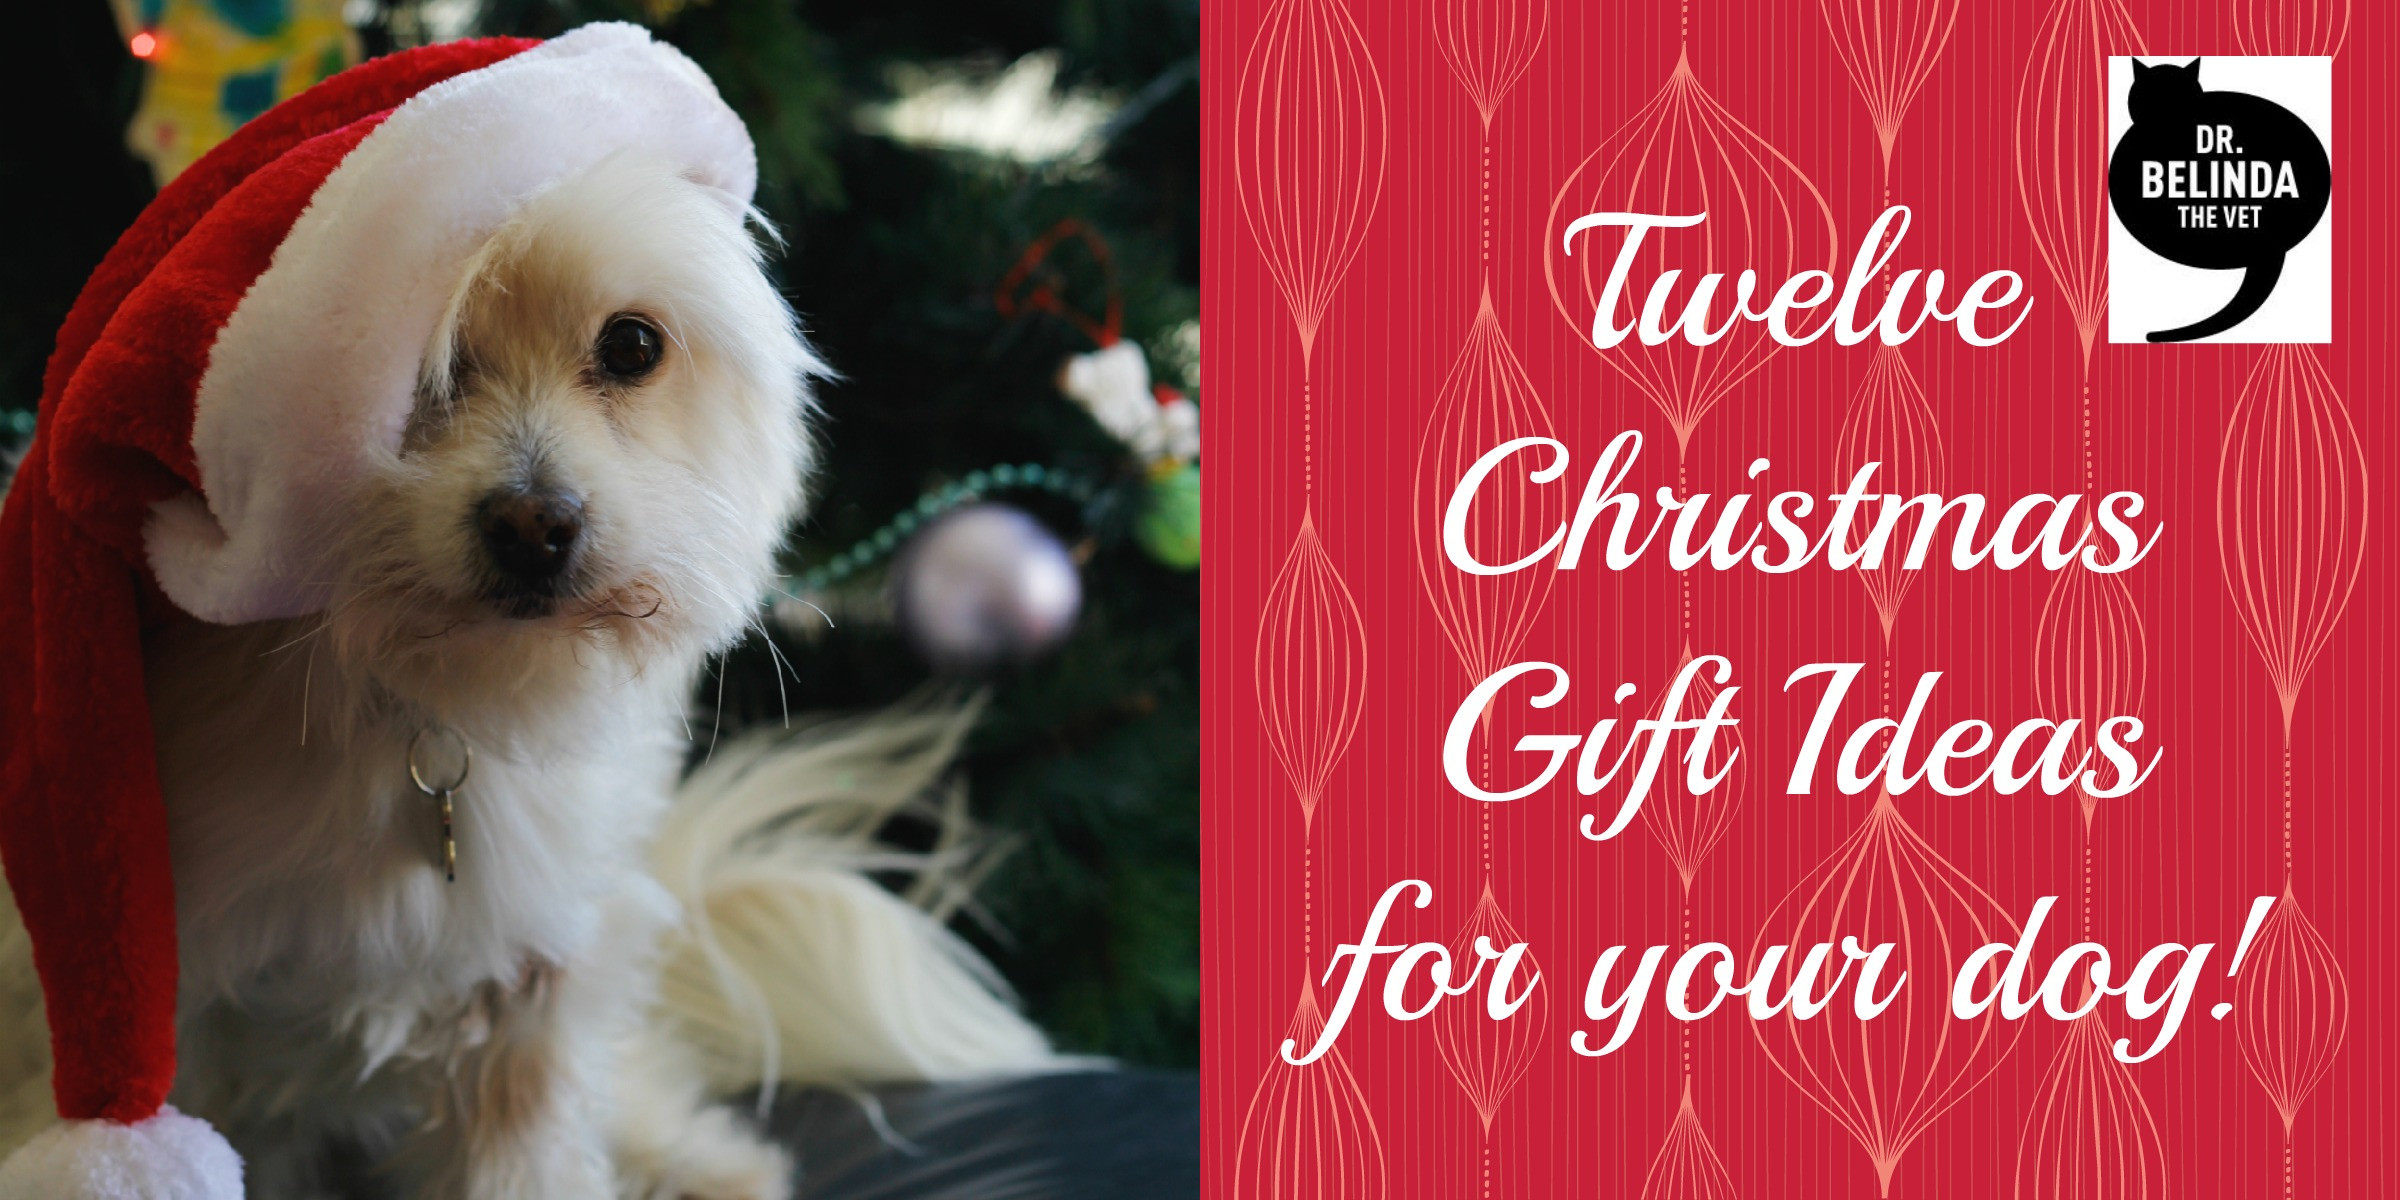 Best ideas about Dog Christmas Gift Ideas . Save or Pin 12 Christmas t ideas for your dog Dr Belinda The Vet Now.